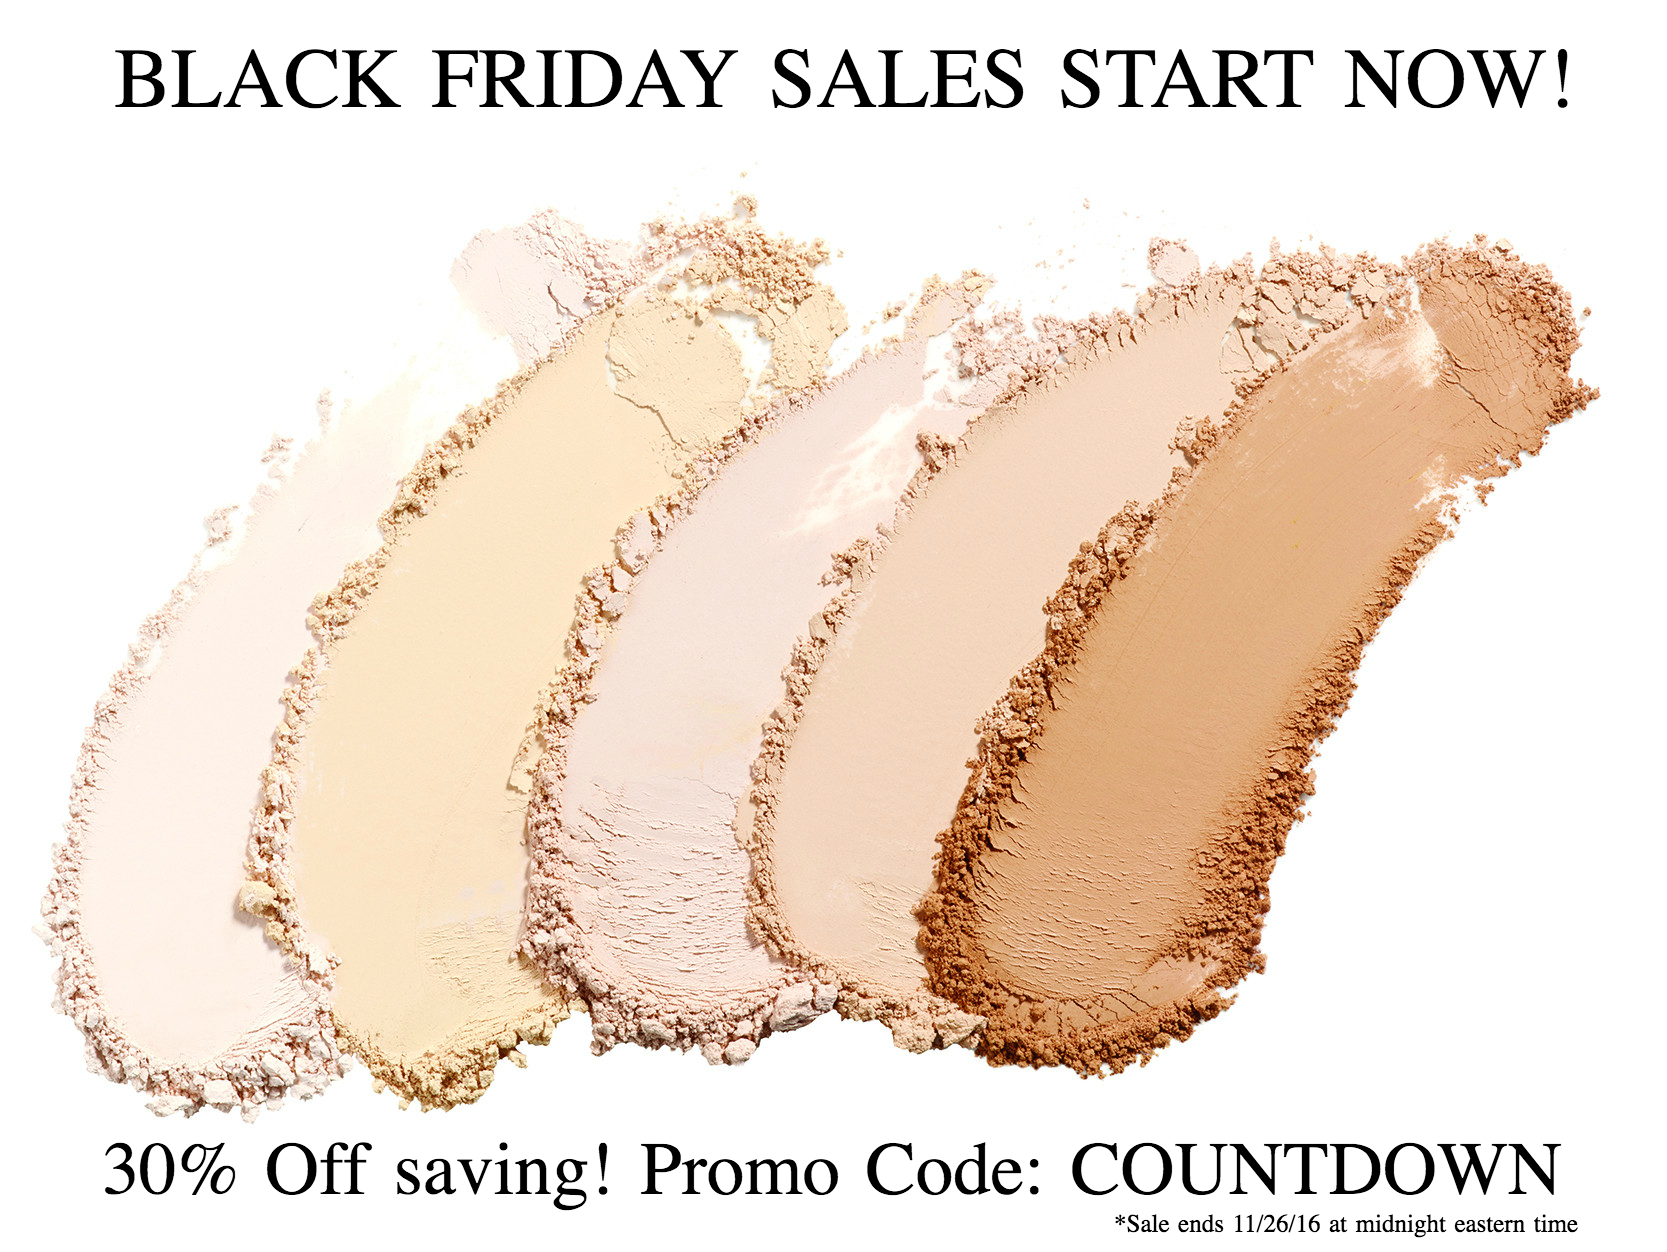 I'M FABULOUS COSMETICS BLACK FRIDAY SALES START NOW!